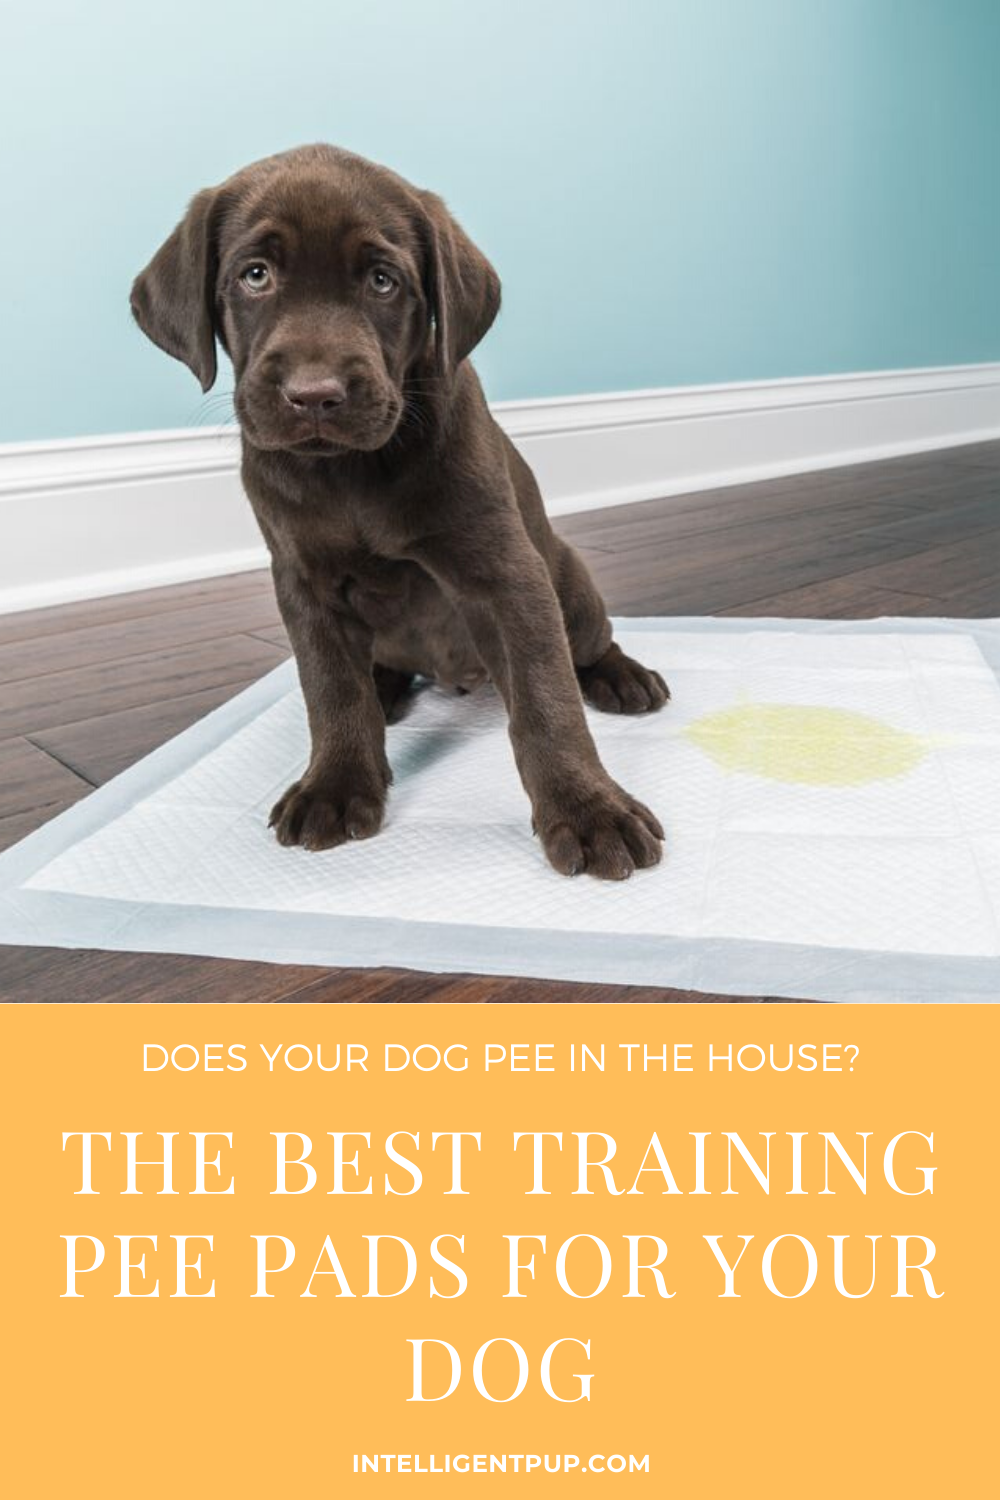 Best Training Pee Pads For Your Dog In 2020 Dog Pee Dog Pee Pads Indoor Dog Potty